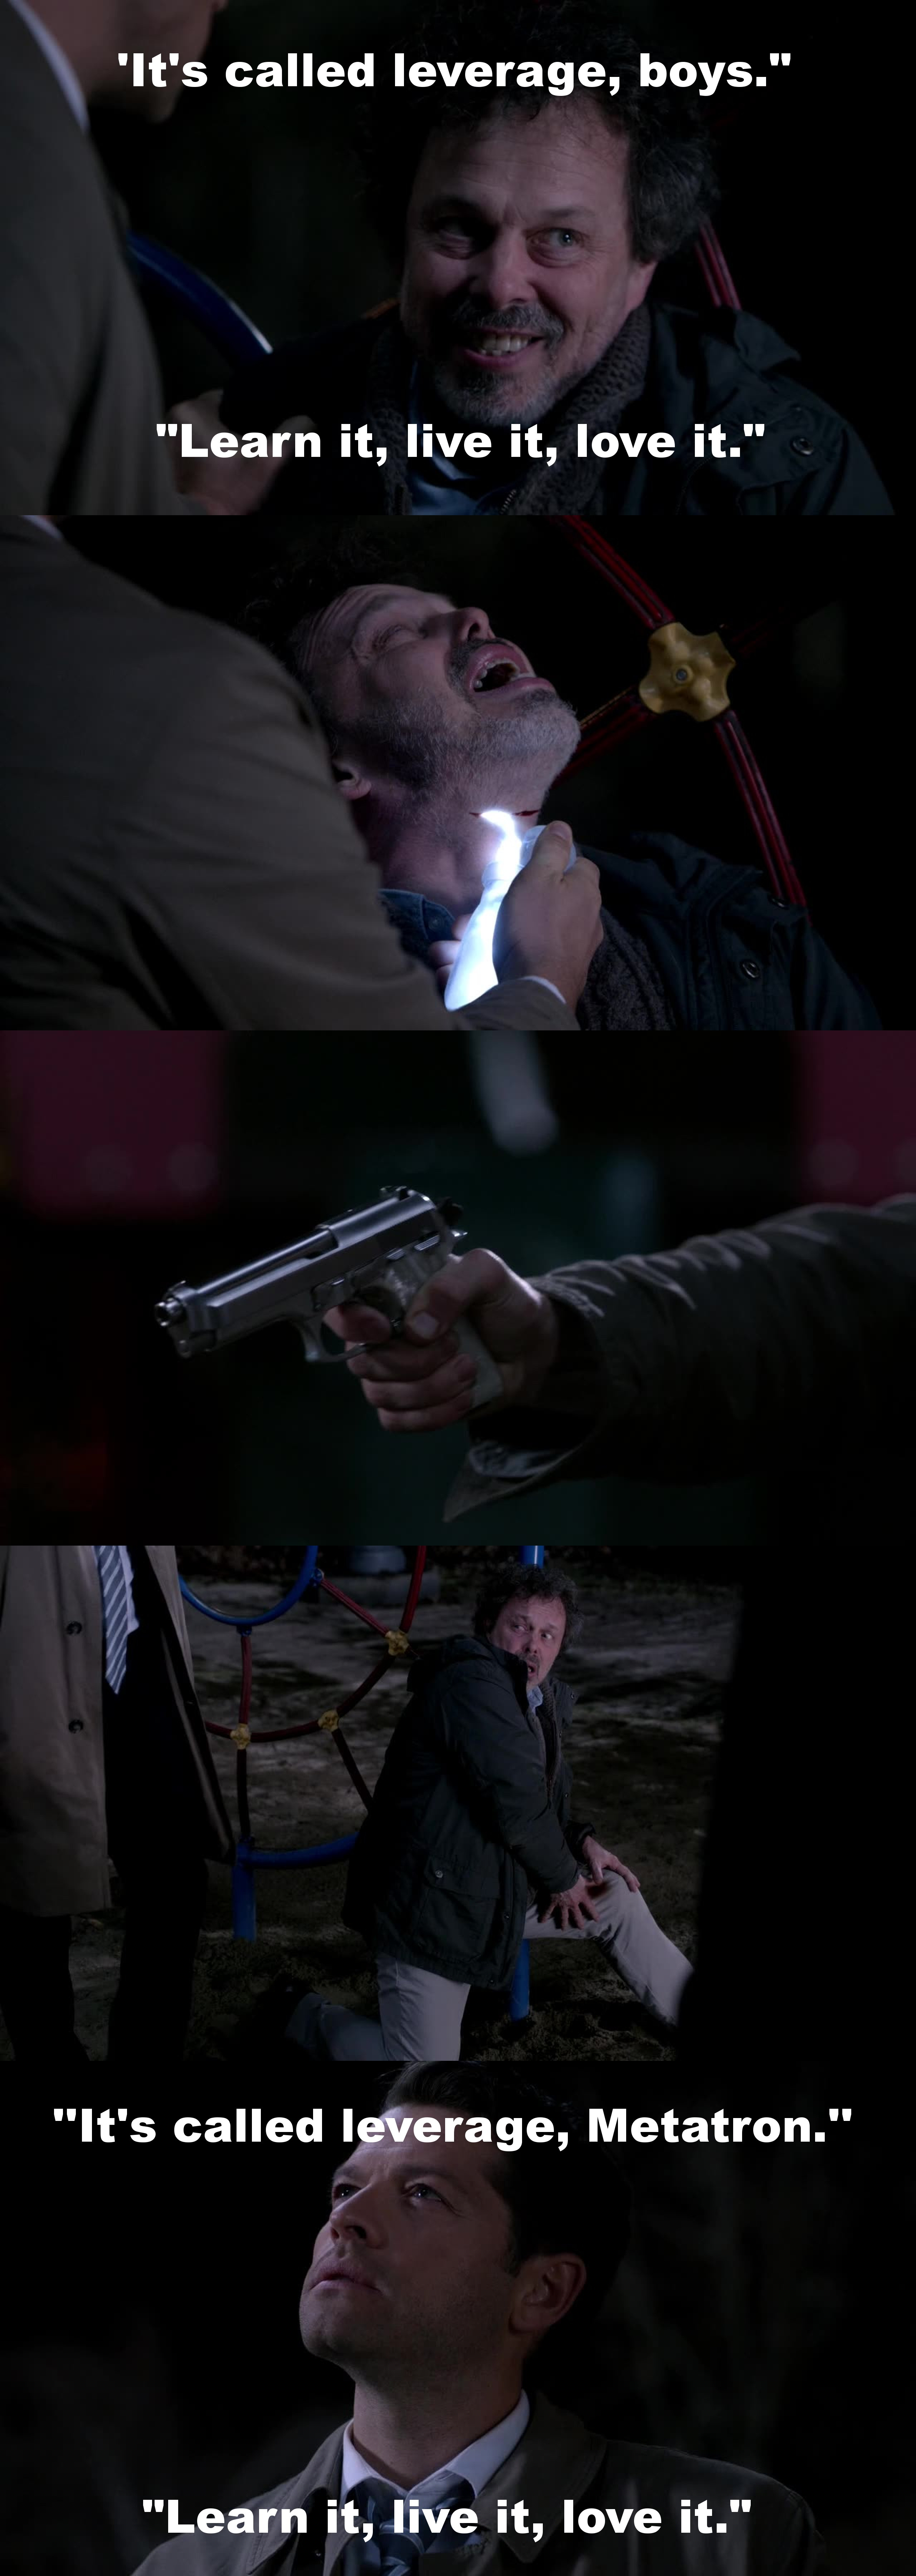 Finally, that son of a b*tch got what he deserved! Best scene of all the scenes containing Metatron so far.